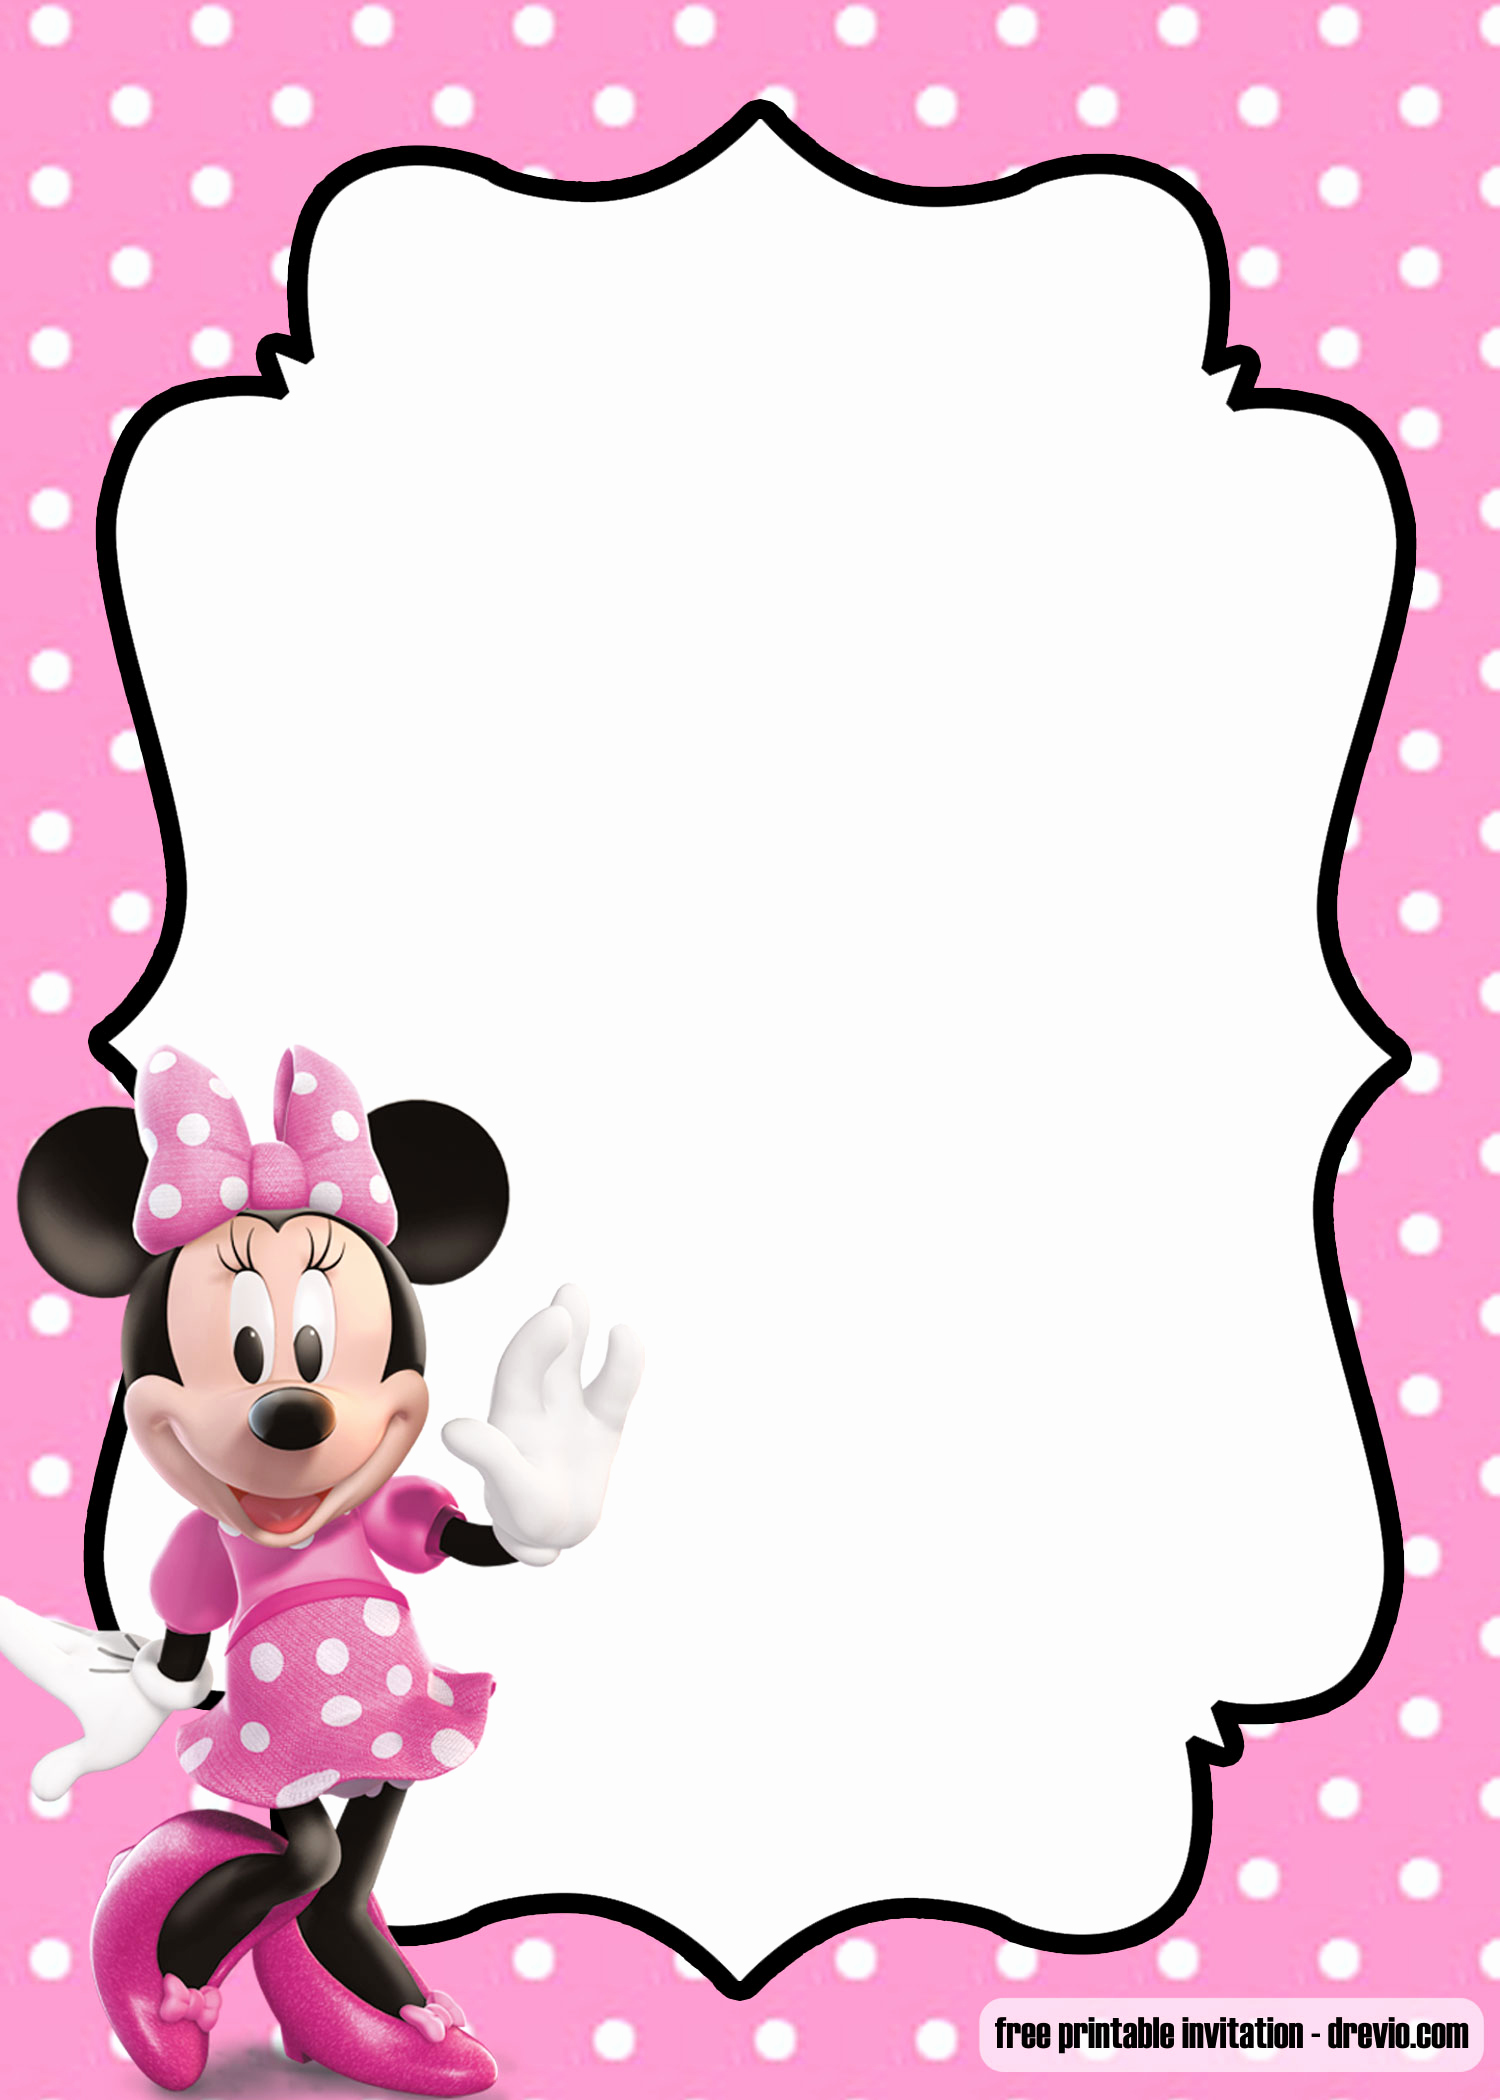 Free Minnie Mouse Invitation Template Best Of Free Polka Dot Pink Minnie Mouse Invitation Template